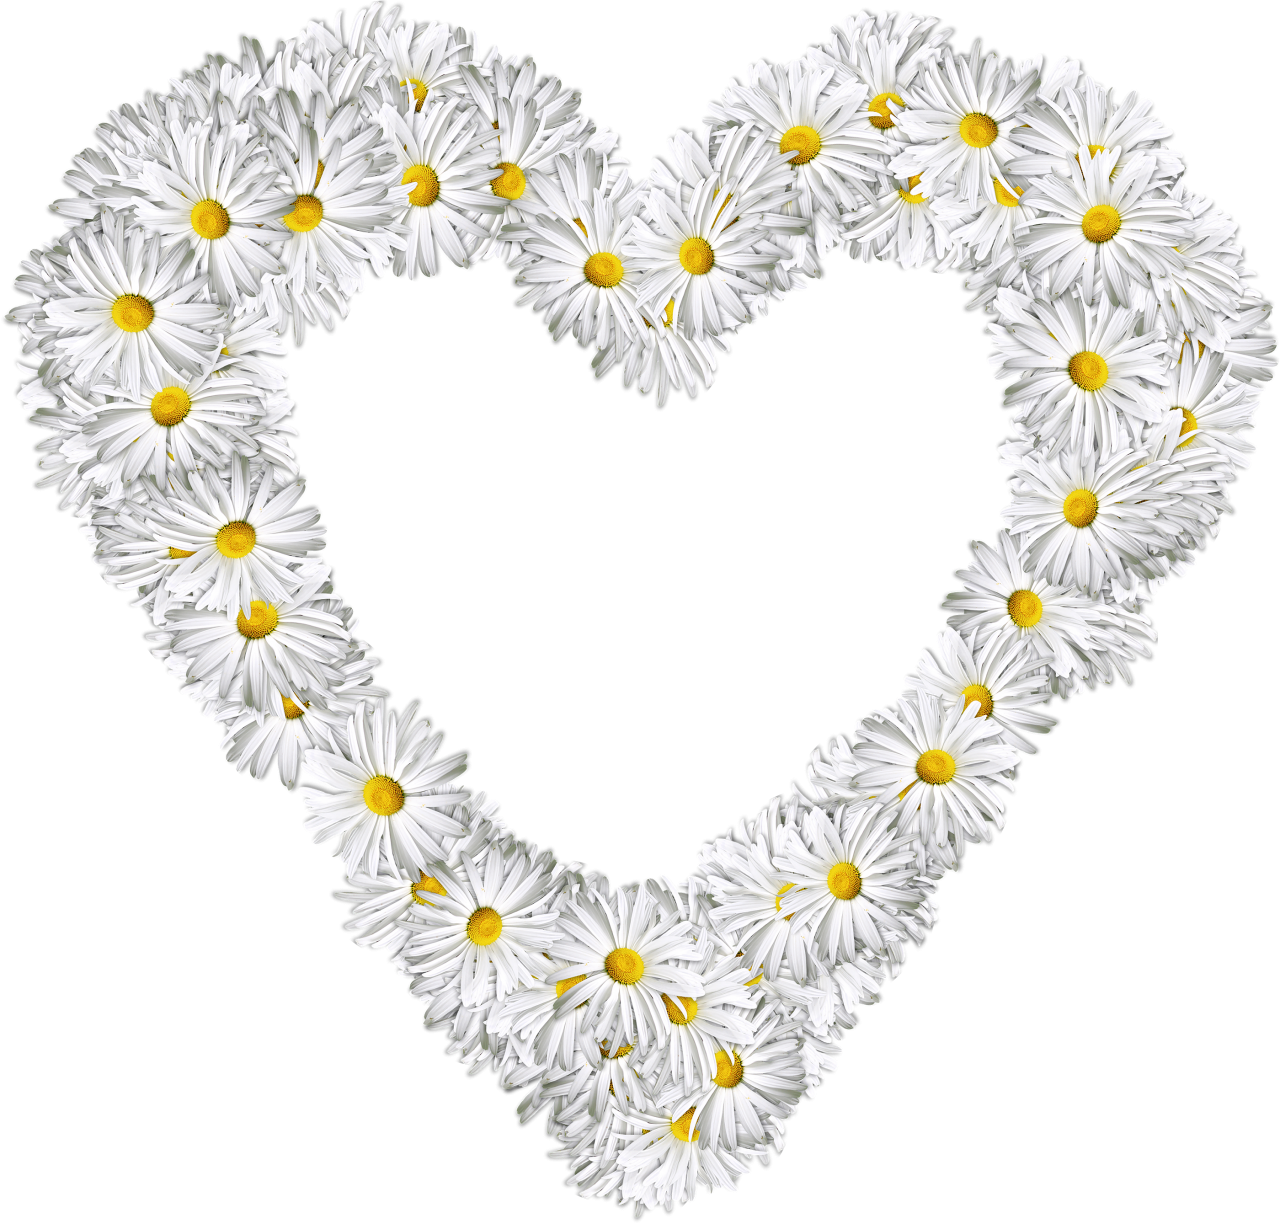 White Flowers Heart PNG Image